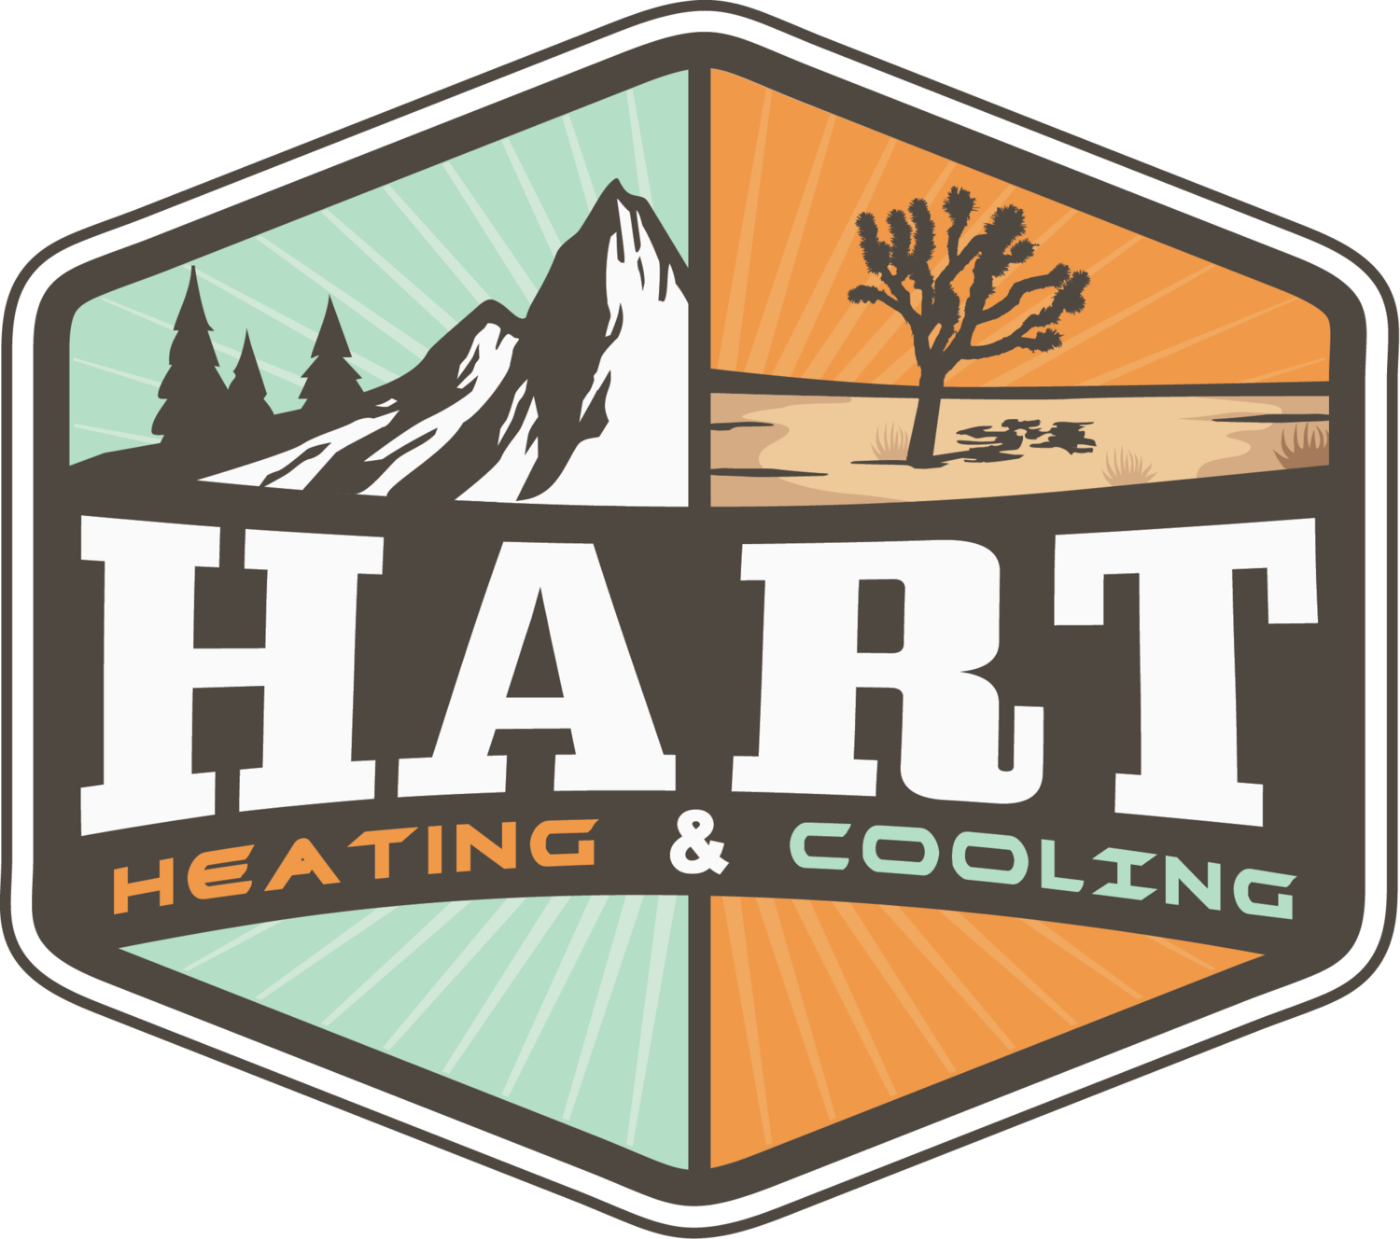 Hart Heating and Cooling